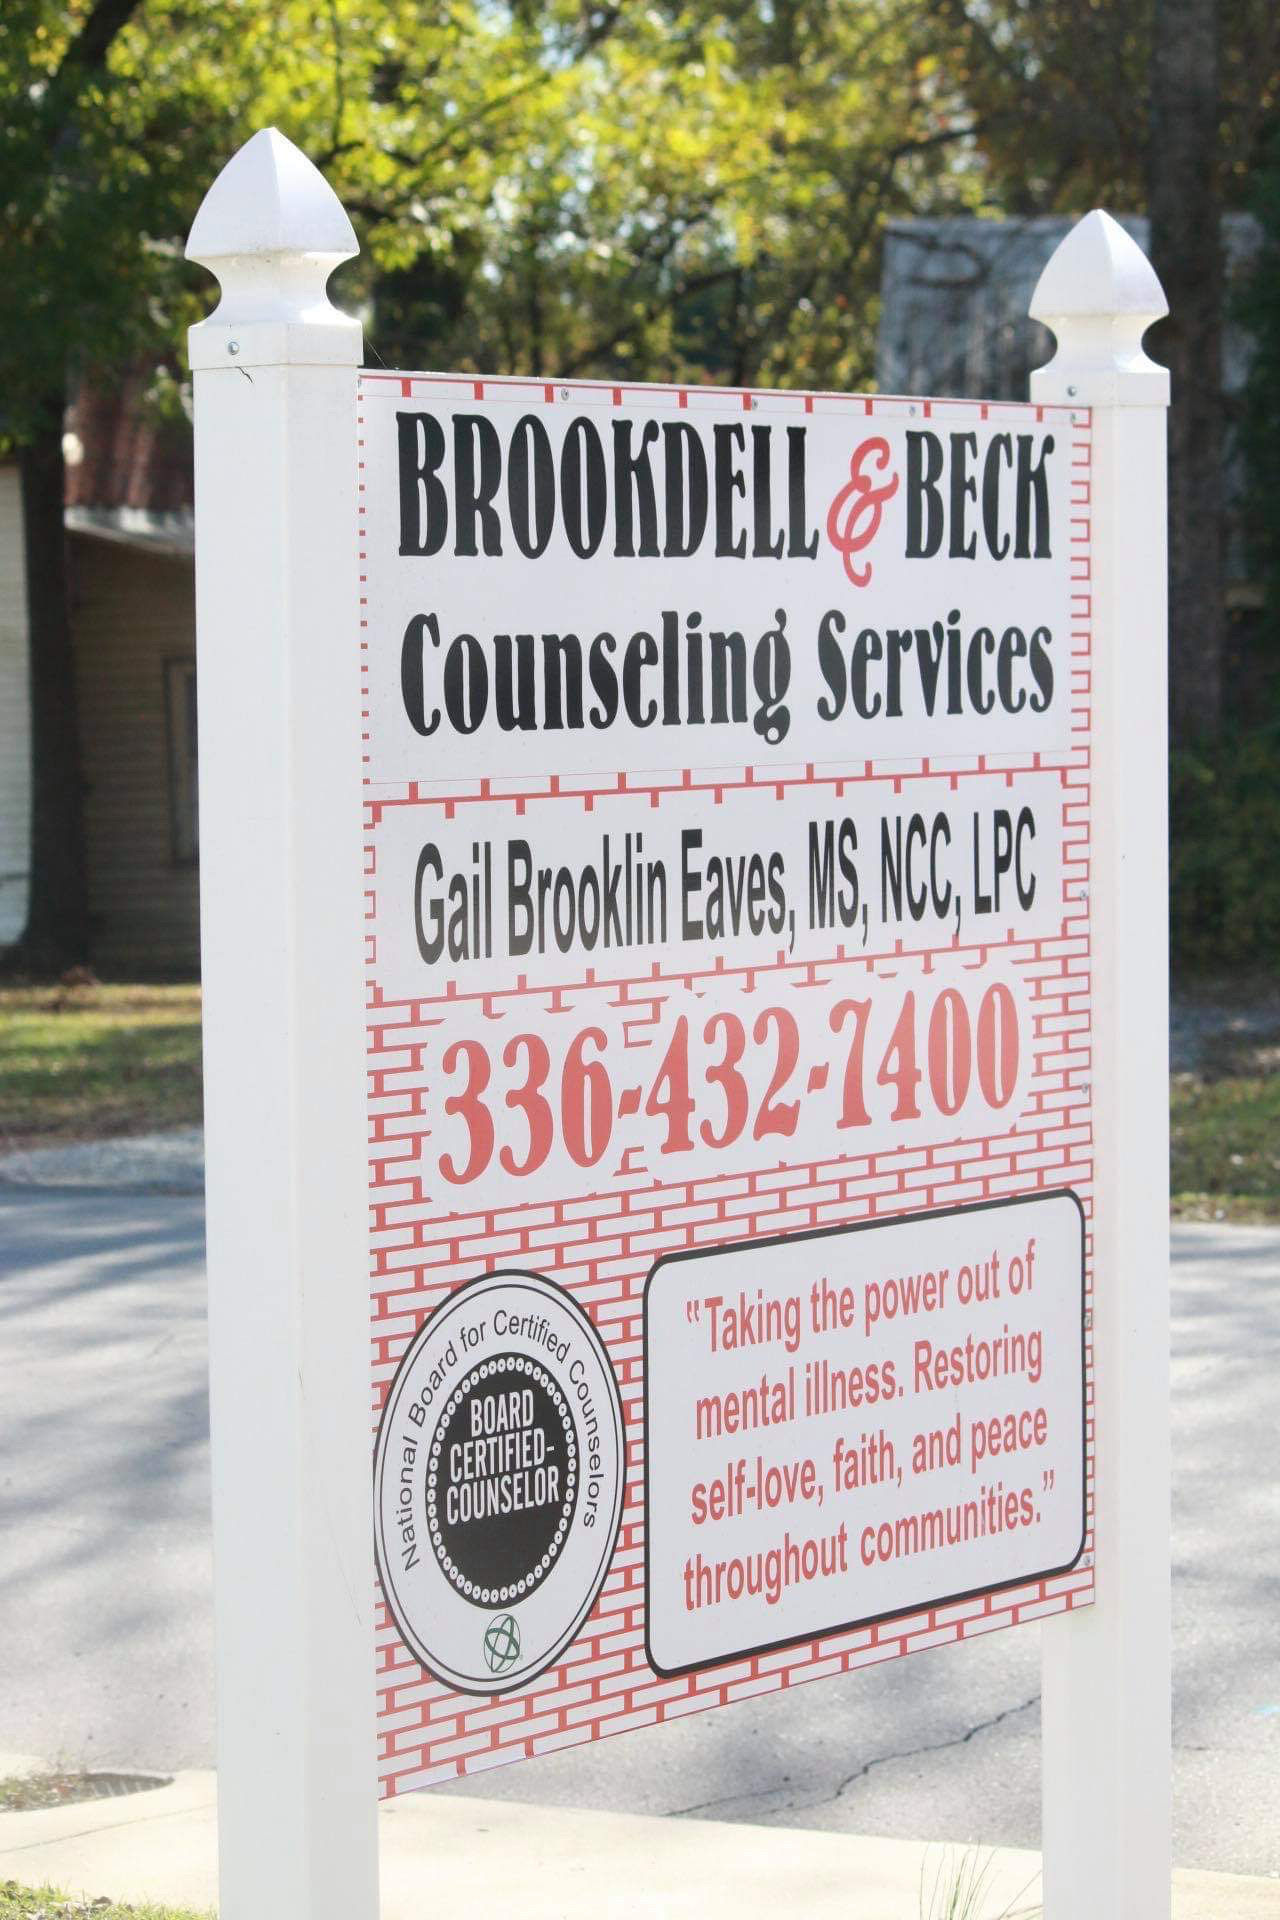 Brookdell & Beck Counseling Services